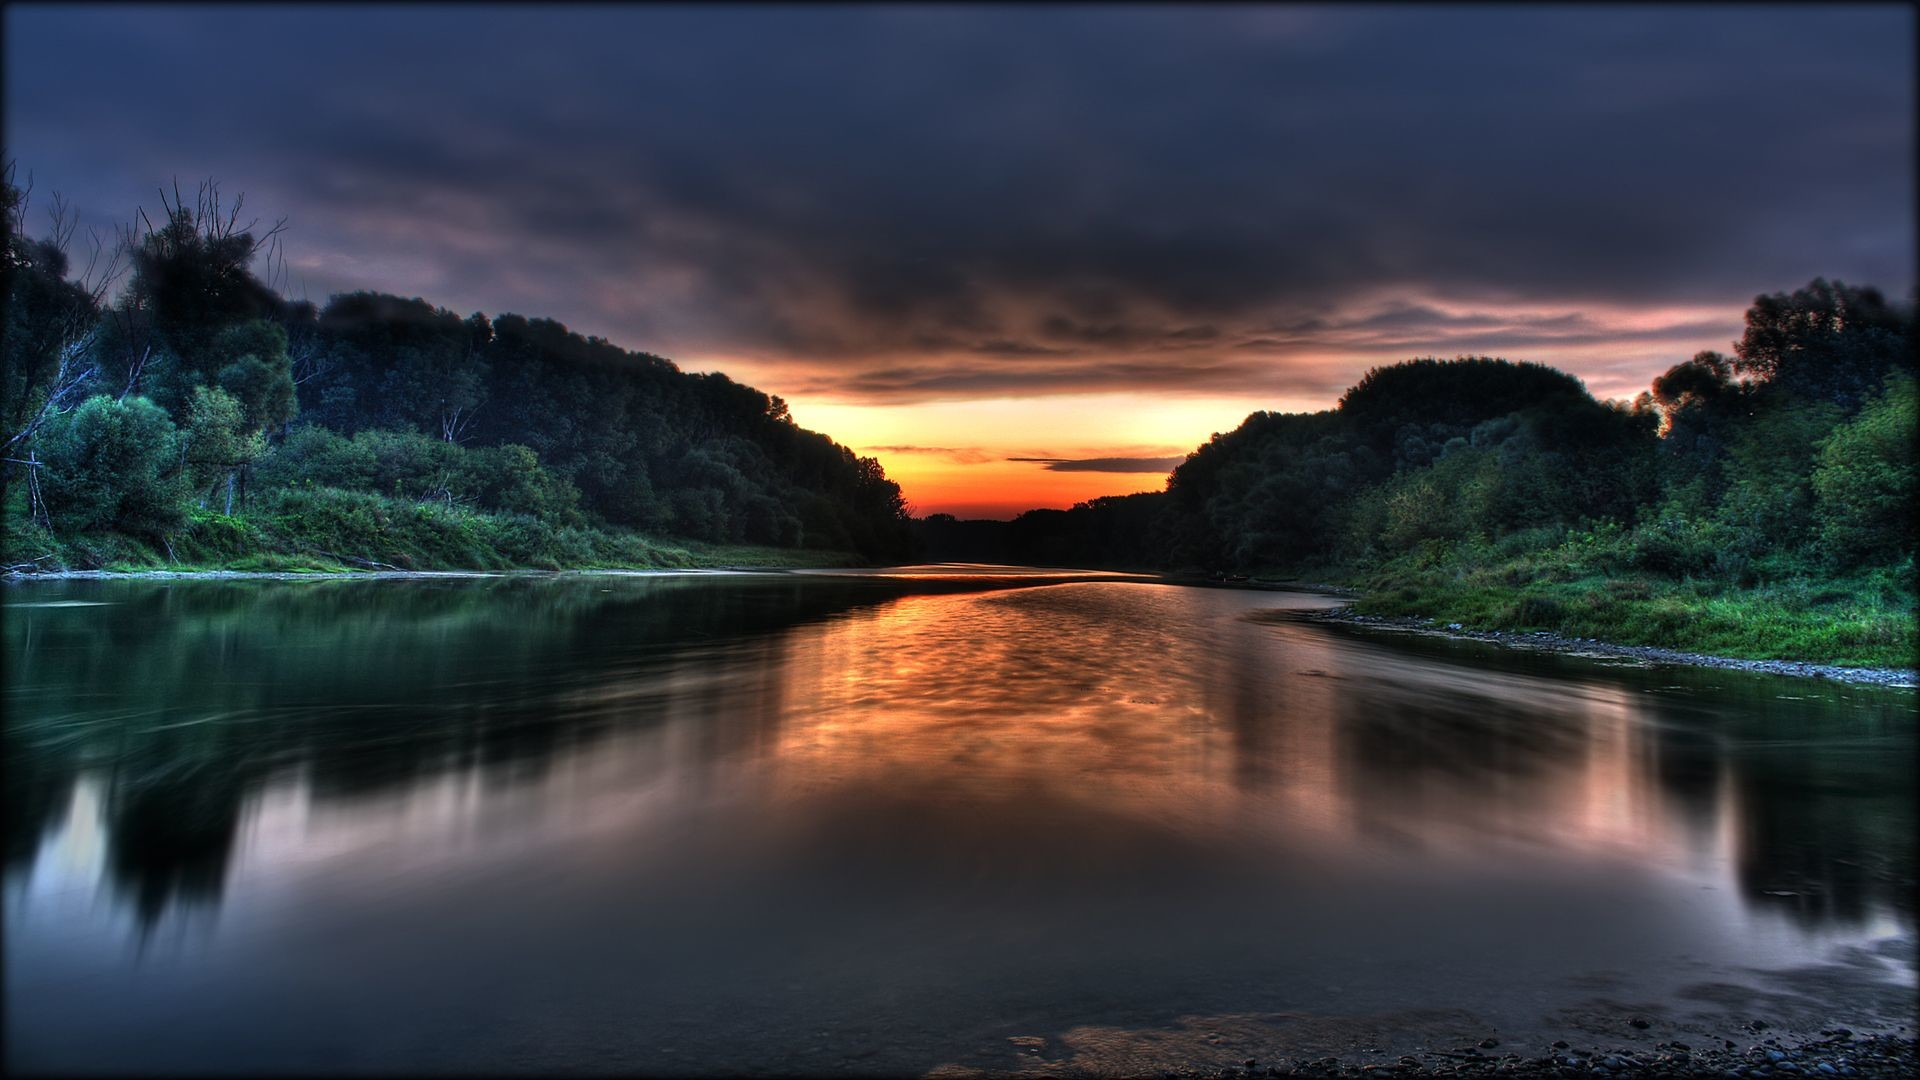 1920x1080 HDTVDonau sunrise HDTV 1080p wallpaper